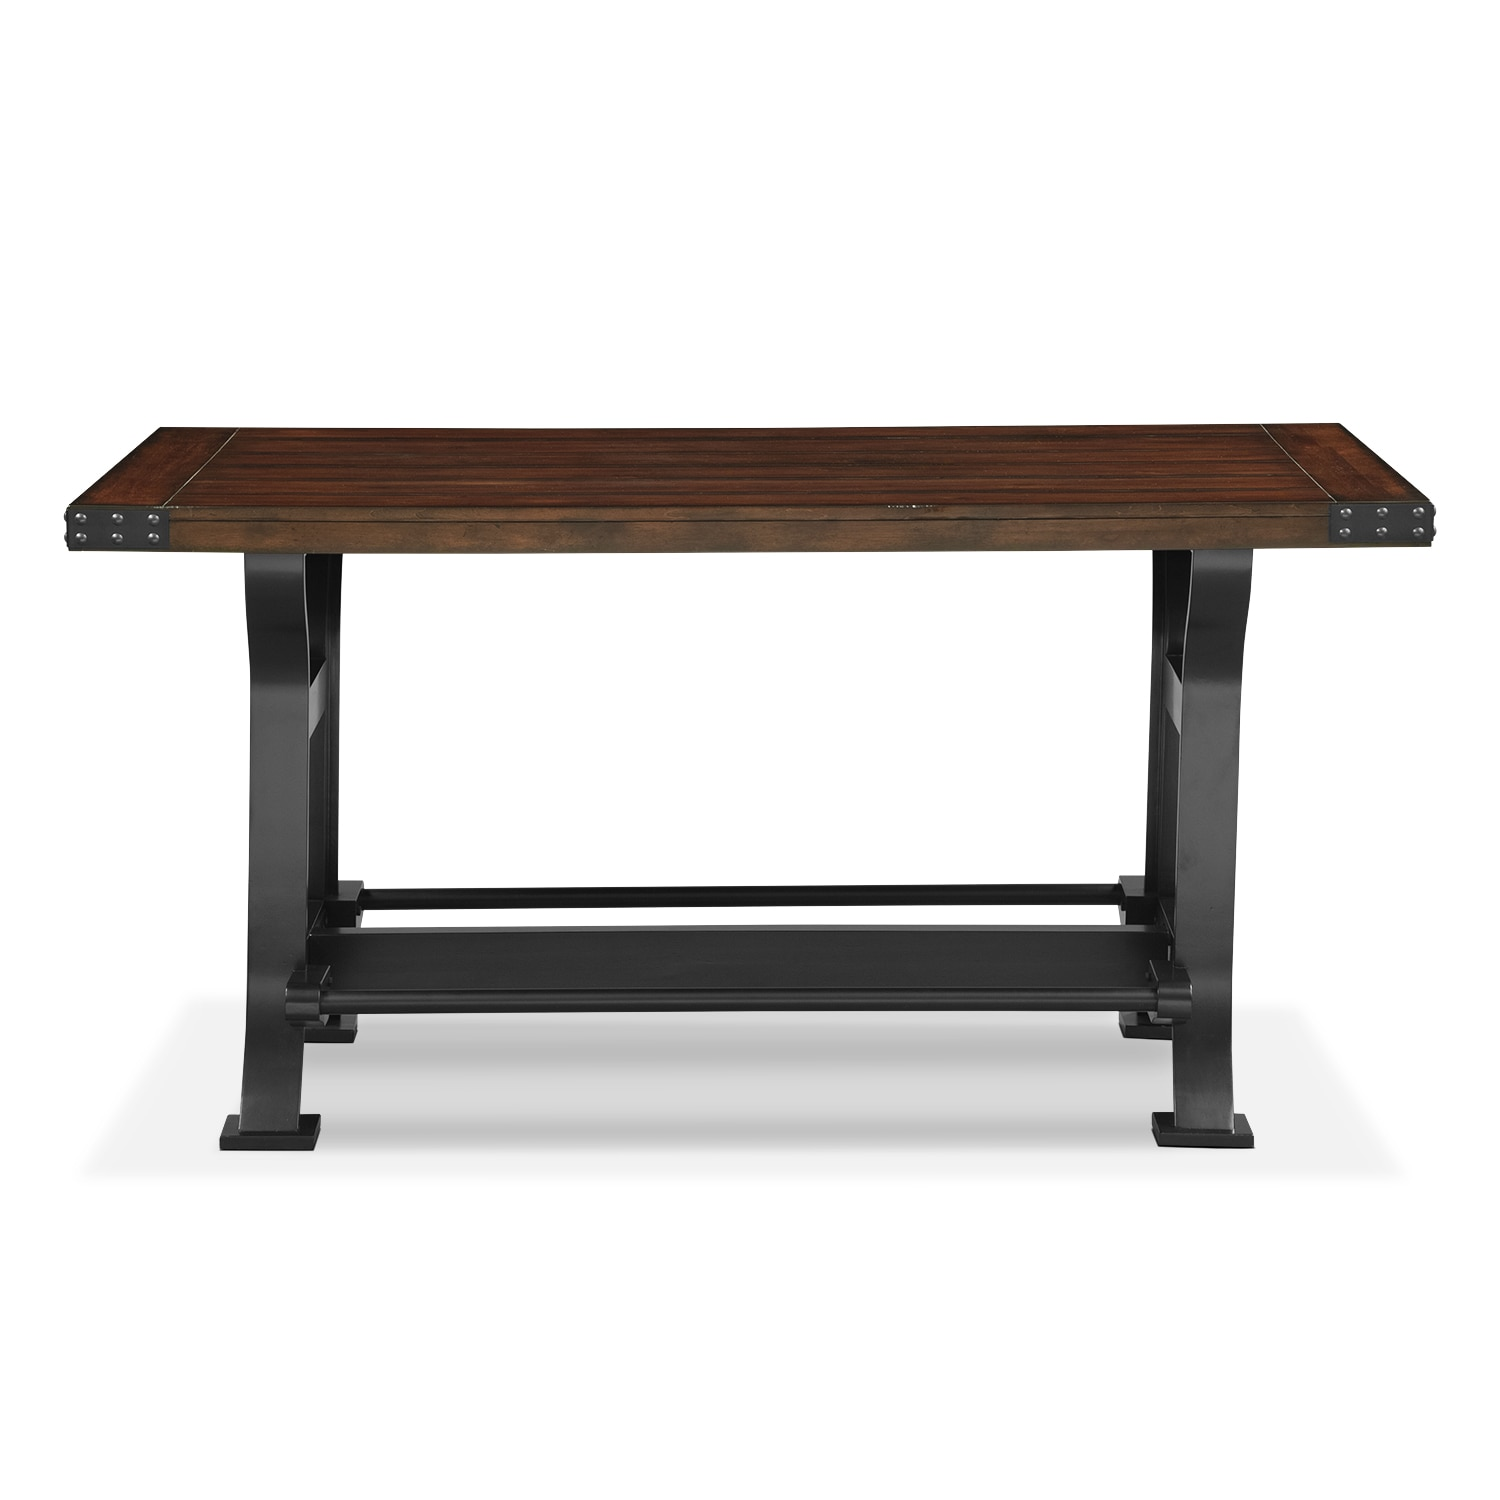 Newcastle counter height dining table mahogany american click to change image geotapseo Choice Image